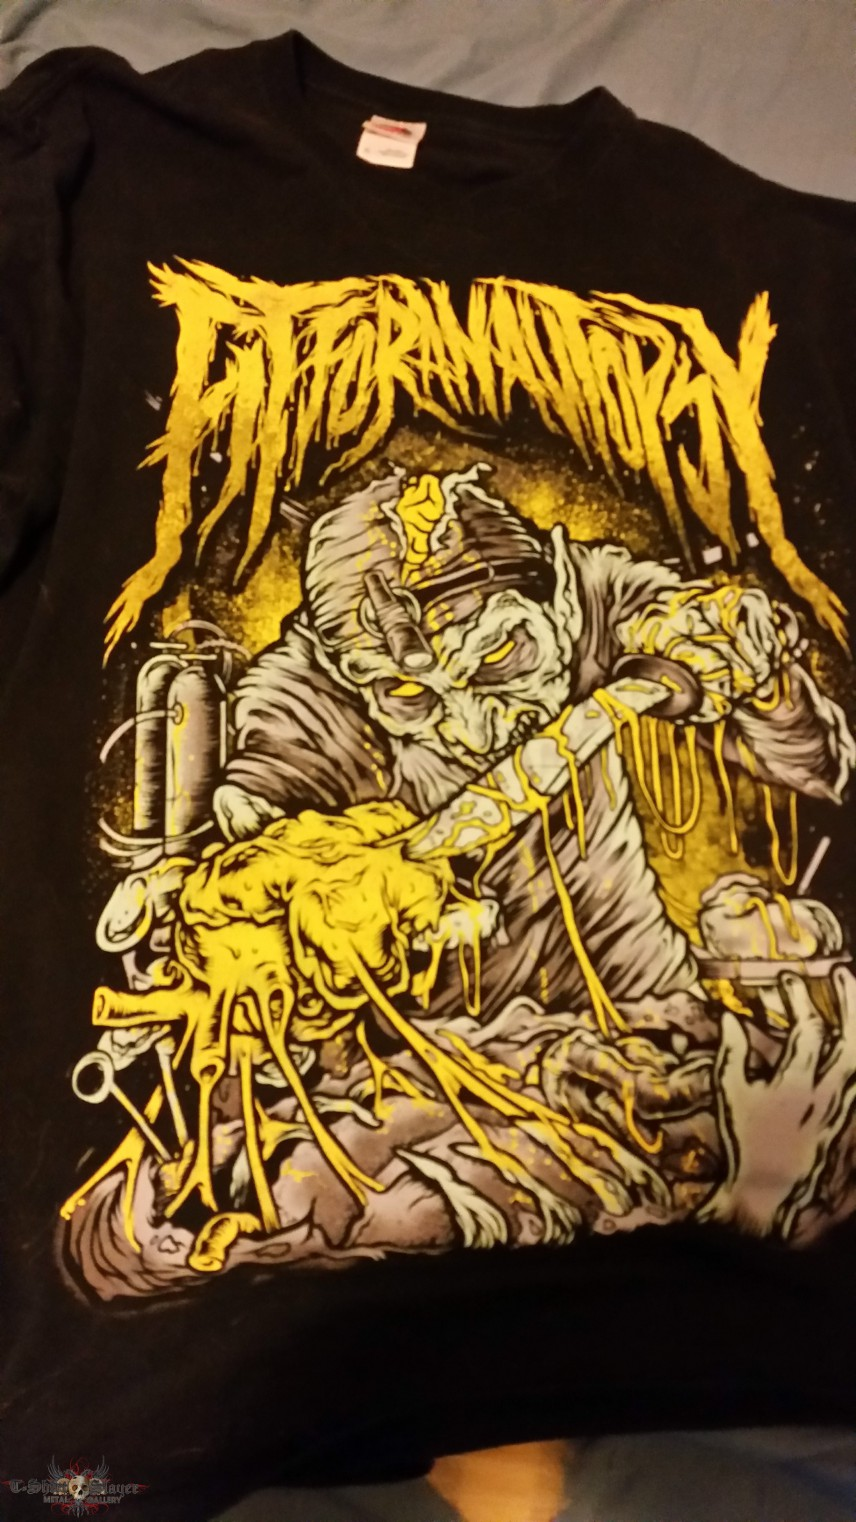 Fit for an autopsy Dr.